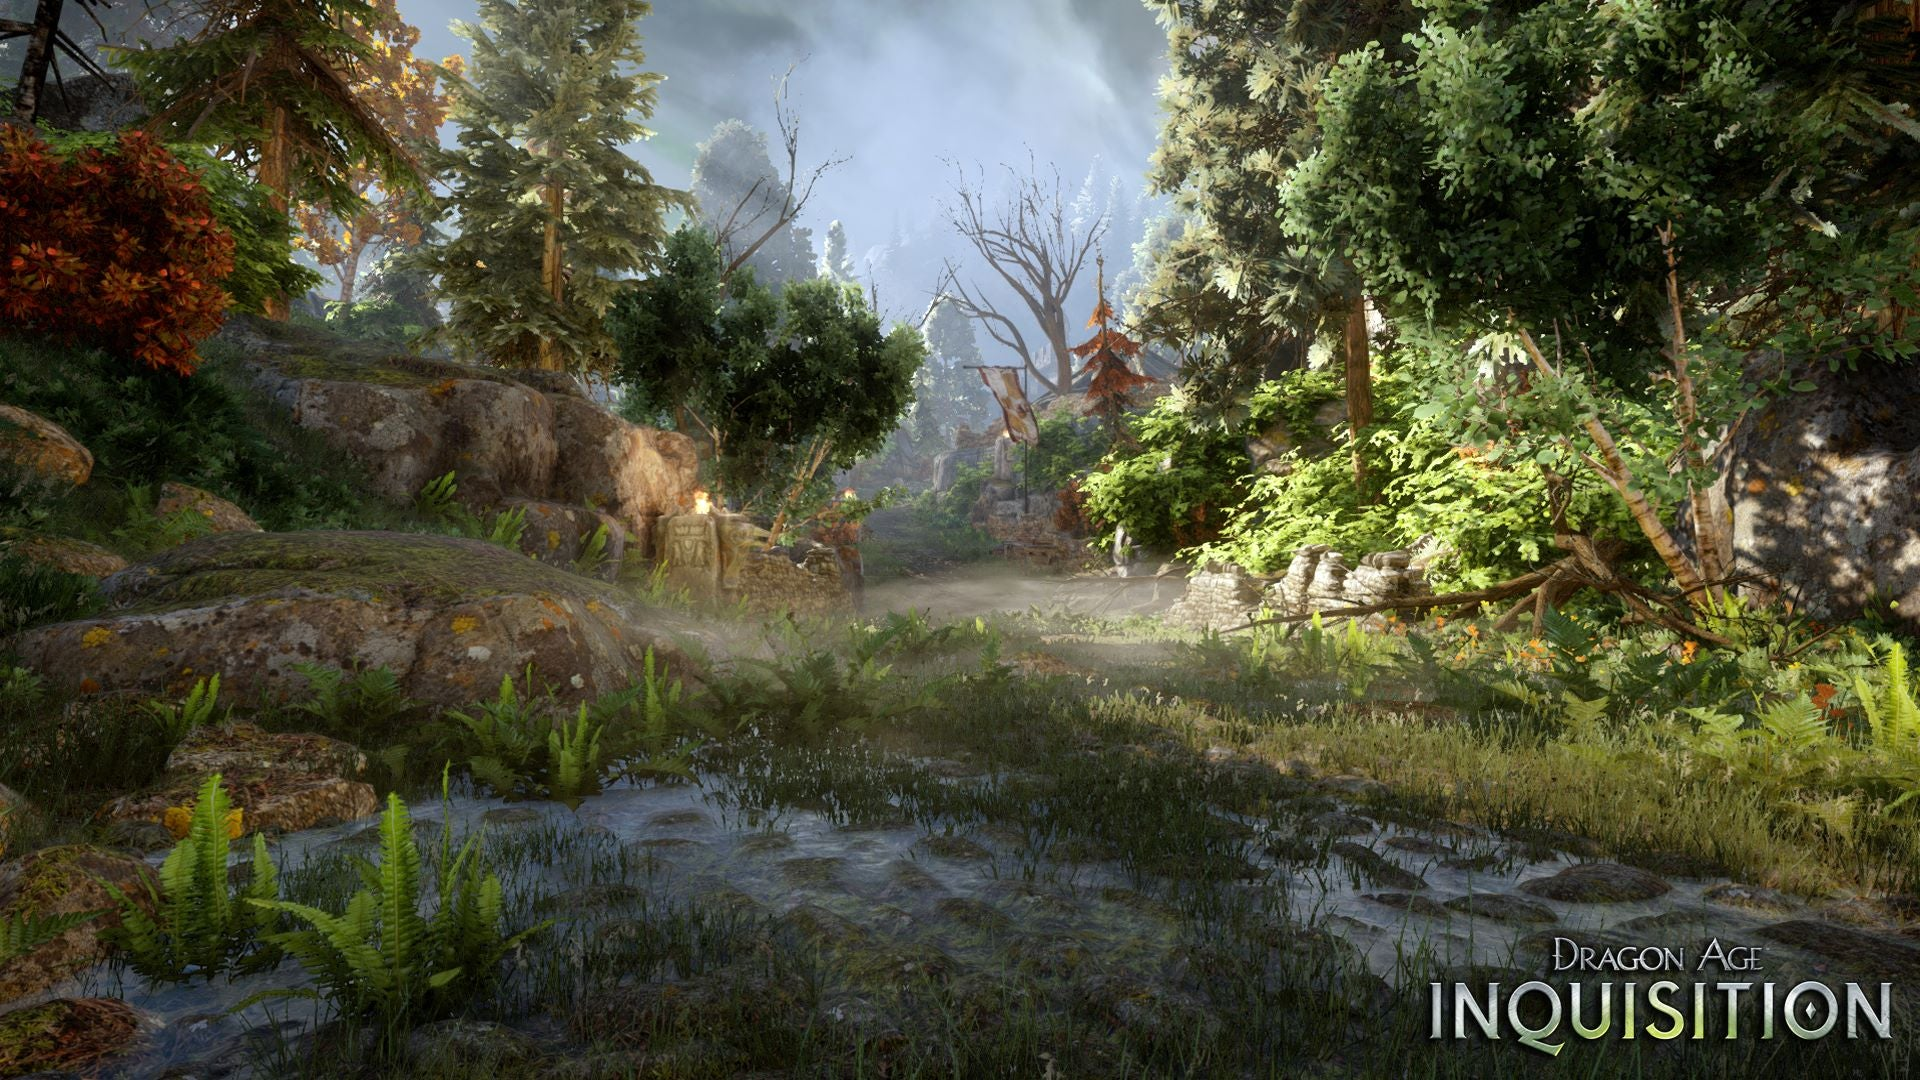 Dragons Map Dragon Age Inquisition Dragon Age Inquisition Holy